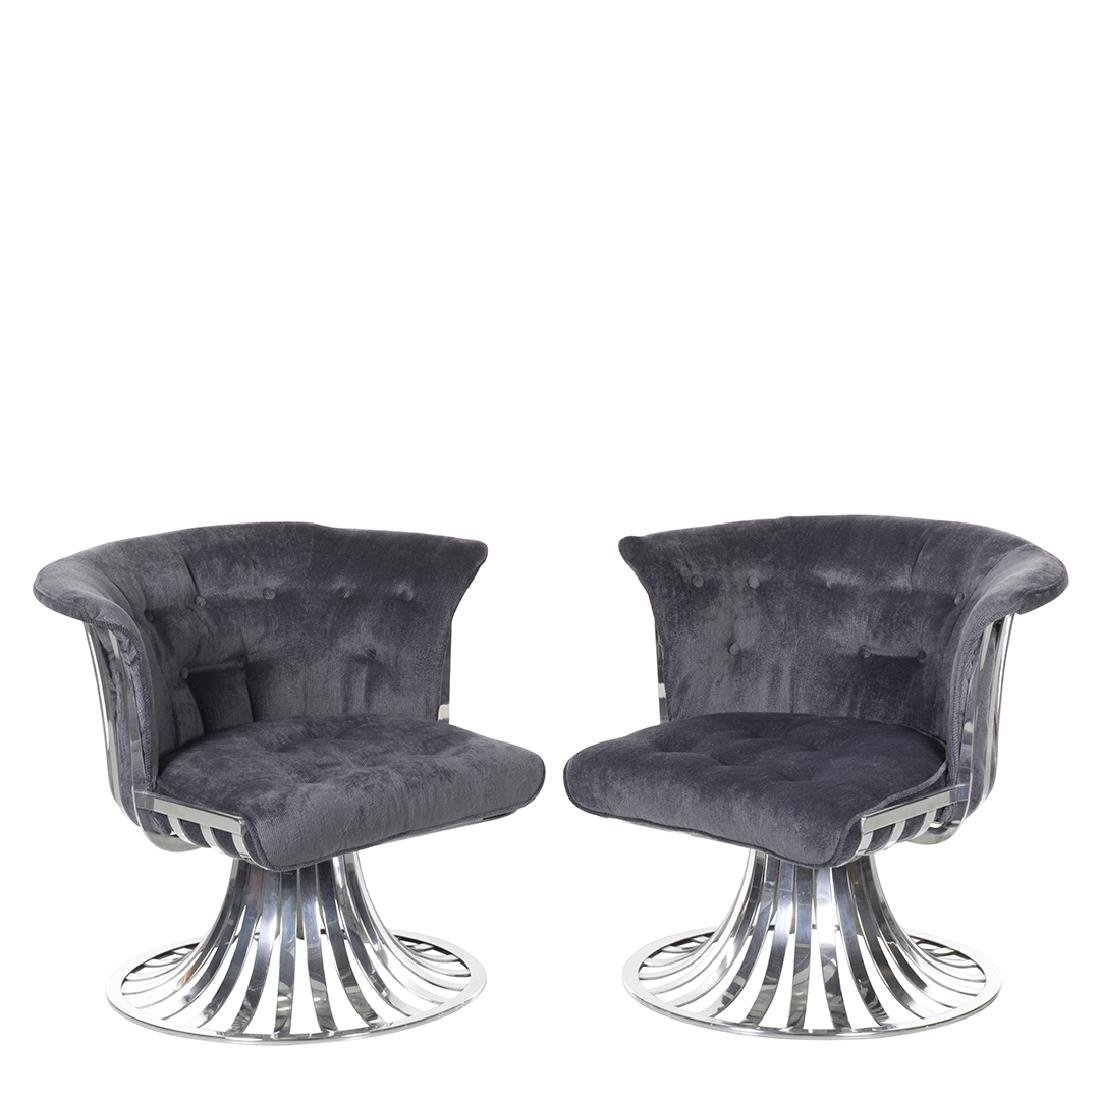 Russell Woodard Aluminum Lounge Chairs (2)